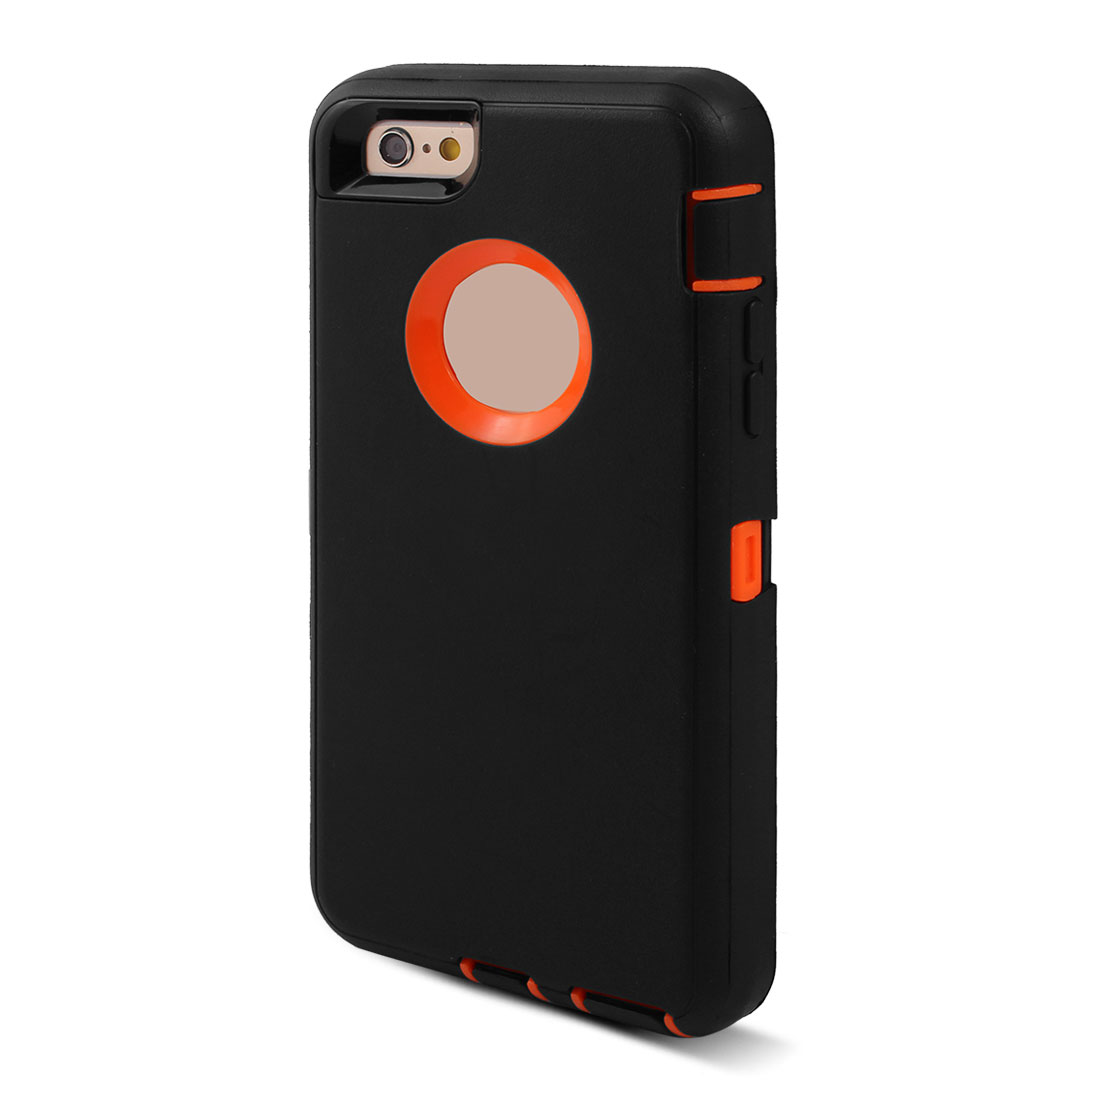 TPU Rotary Belt Clip Tough Full Body Protective Phone Case Black for iPhone 6